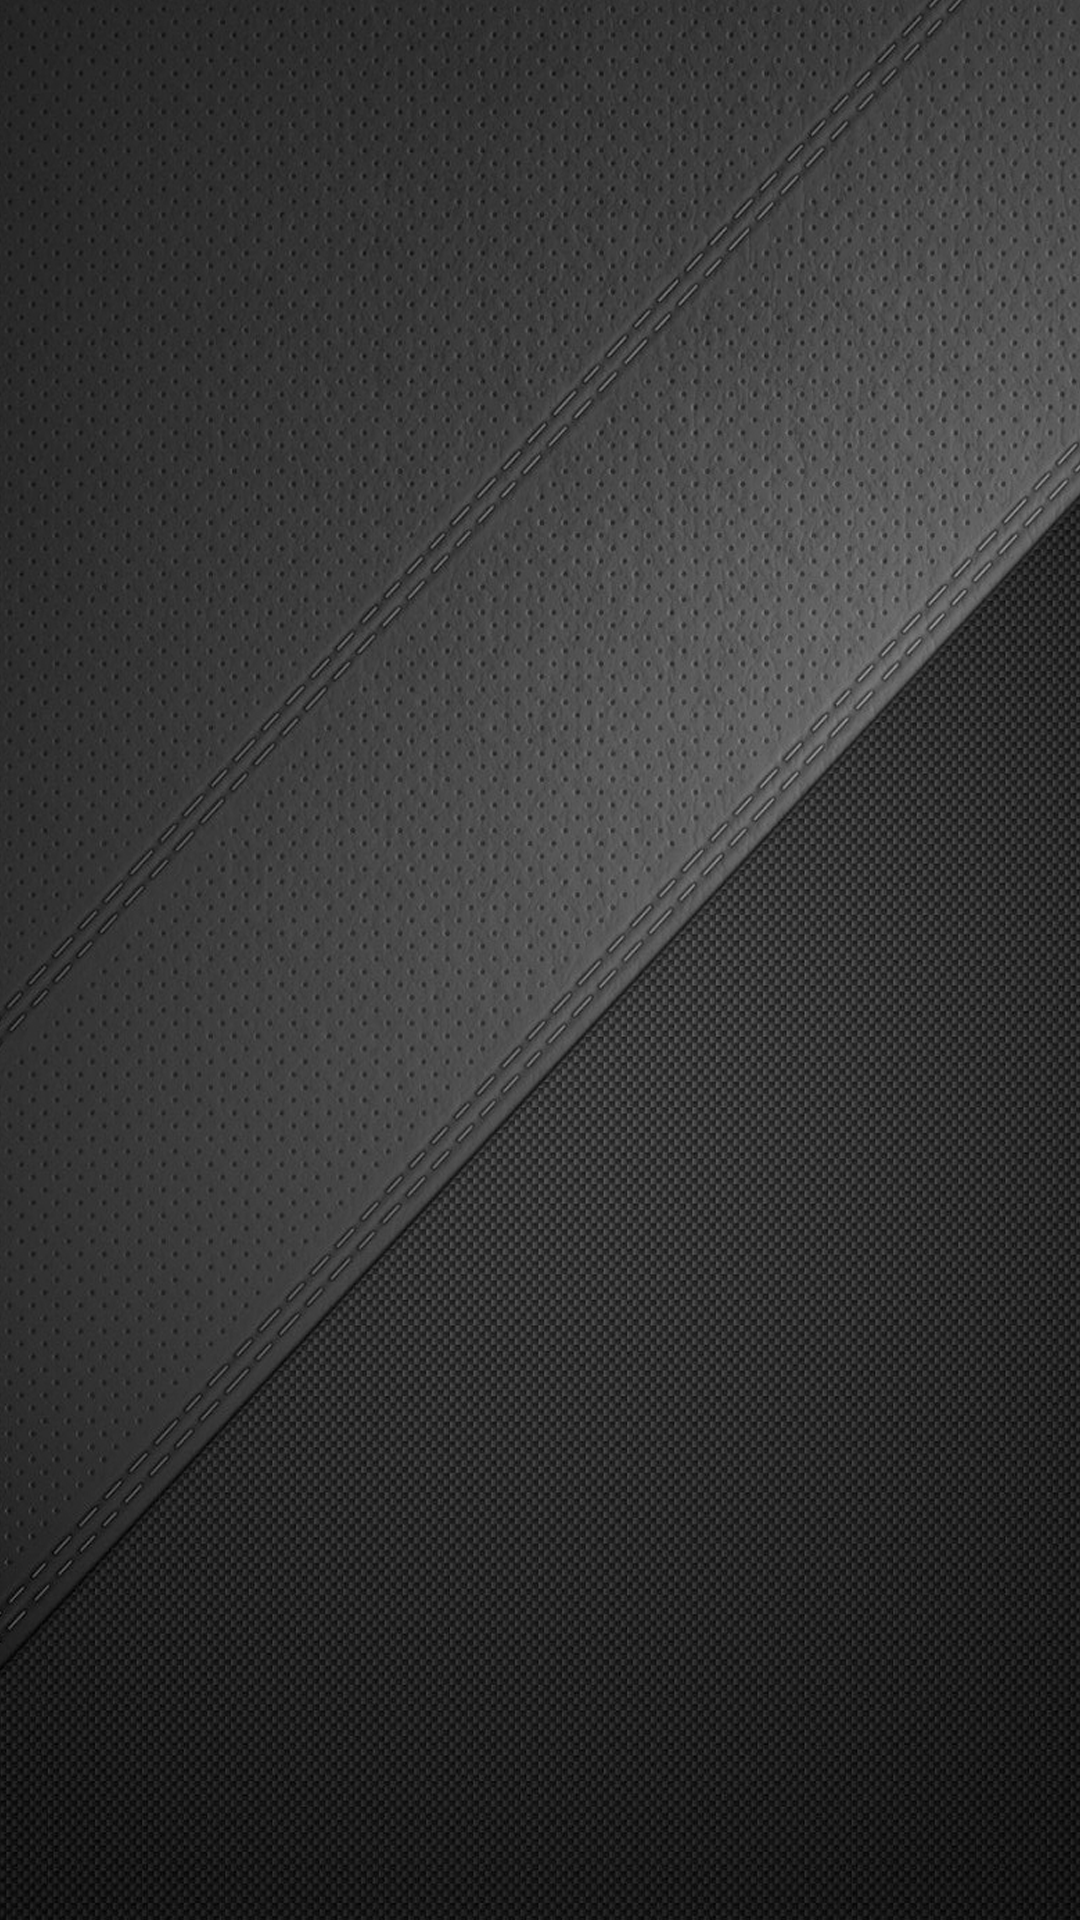 Textures Perforated Leather Texture Dark Android